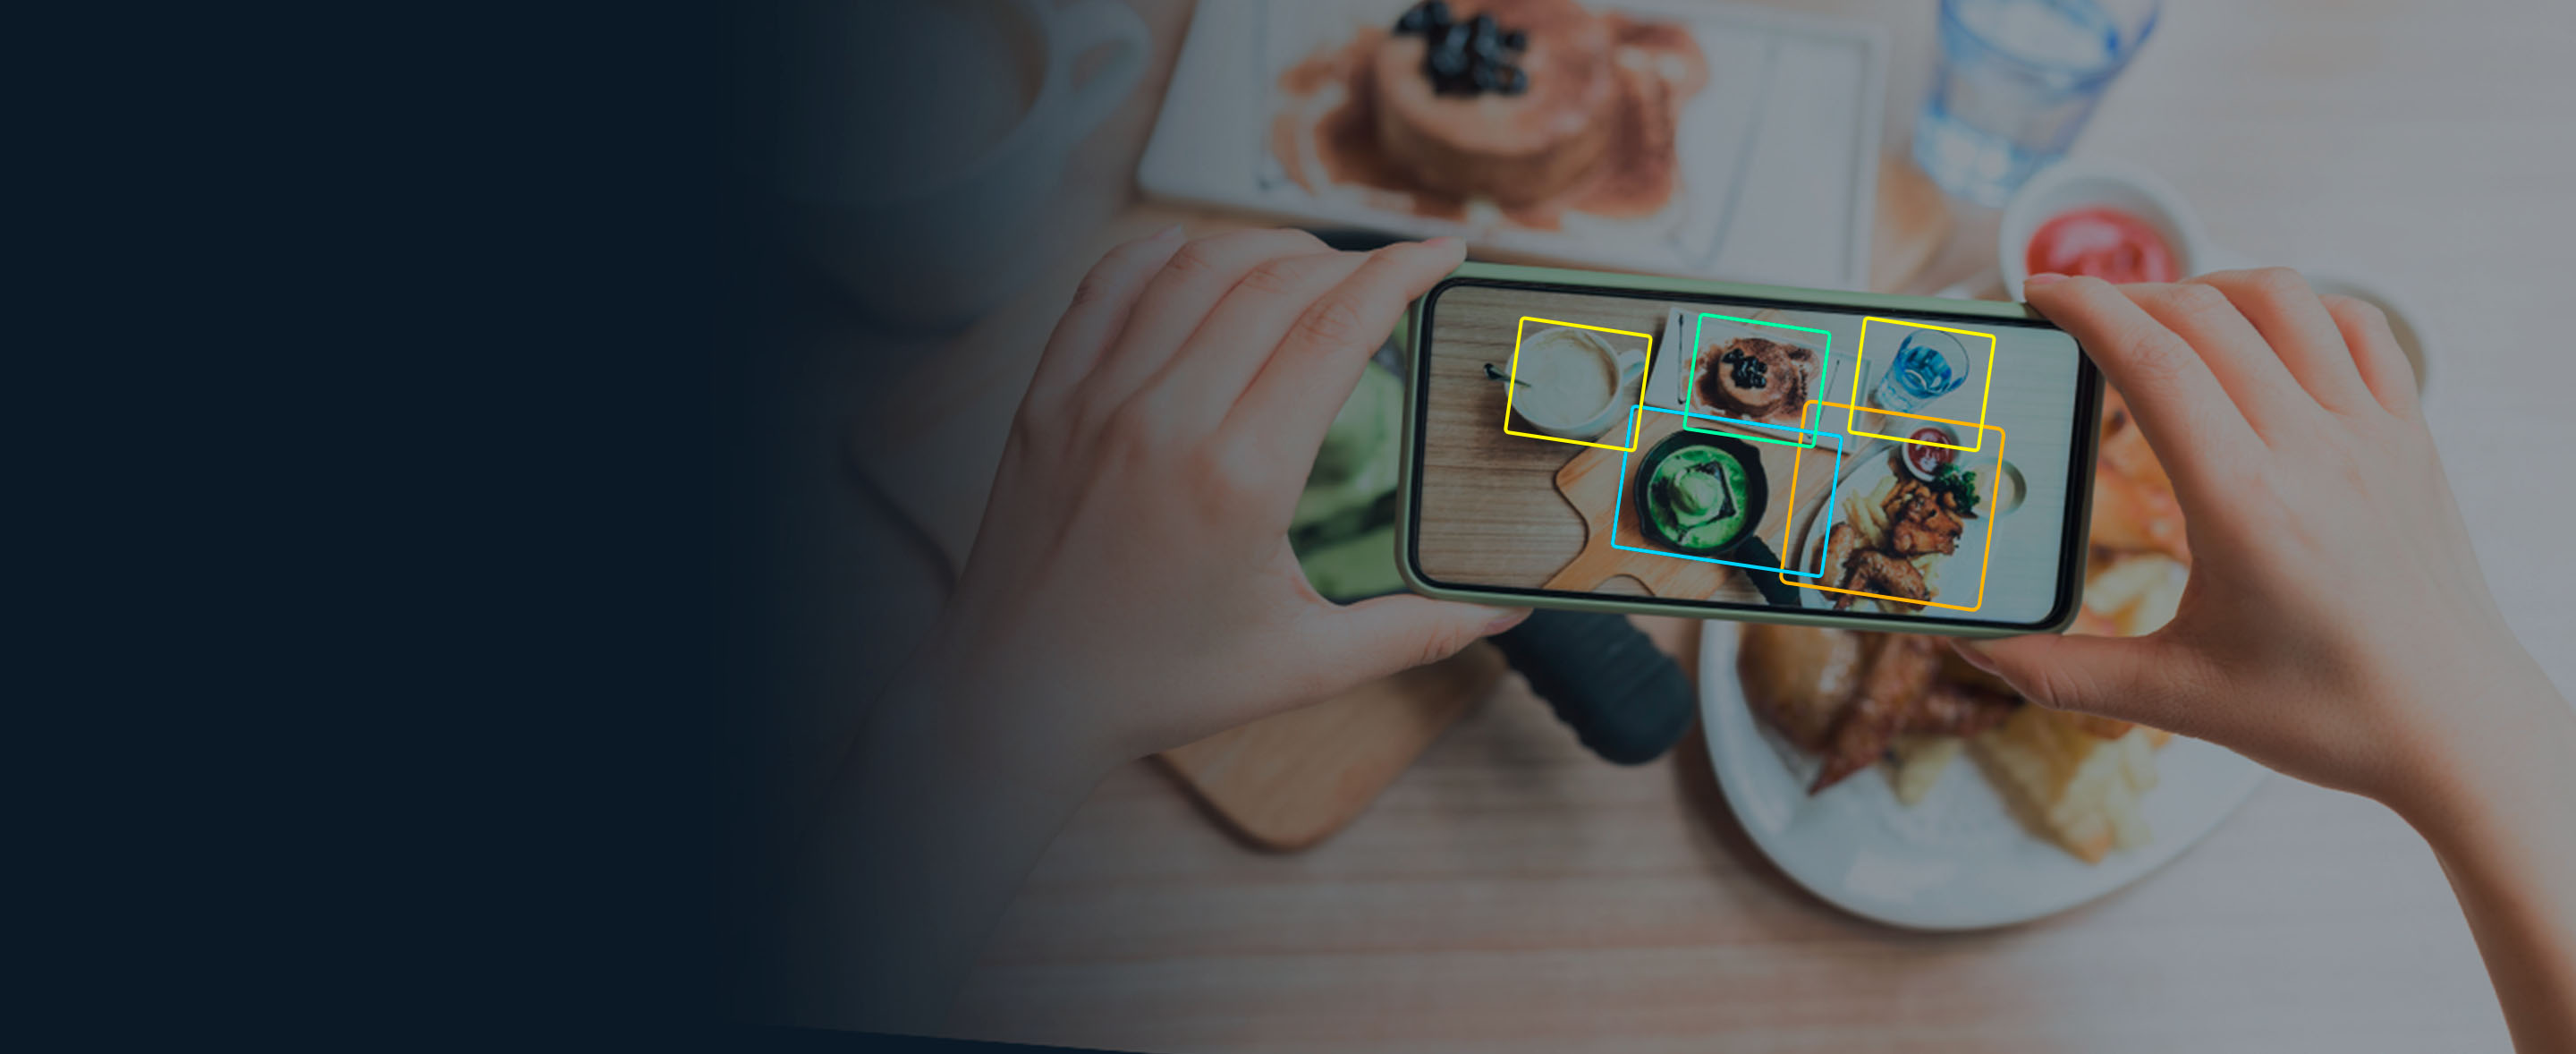 AI solution for food recognition